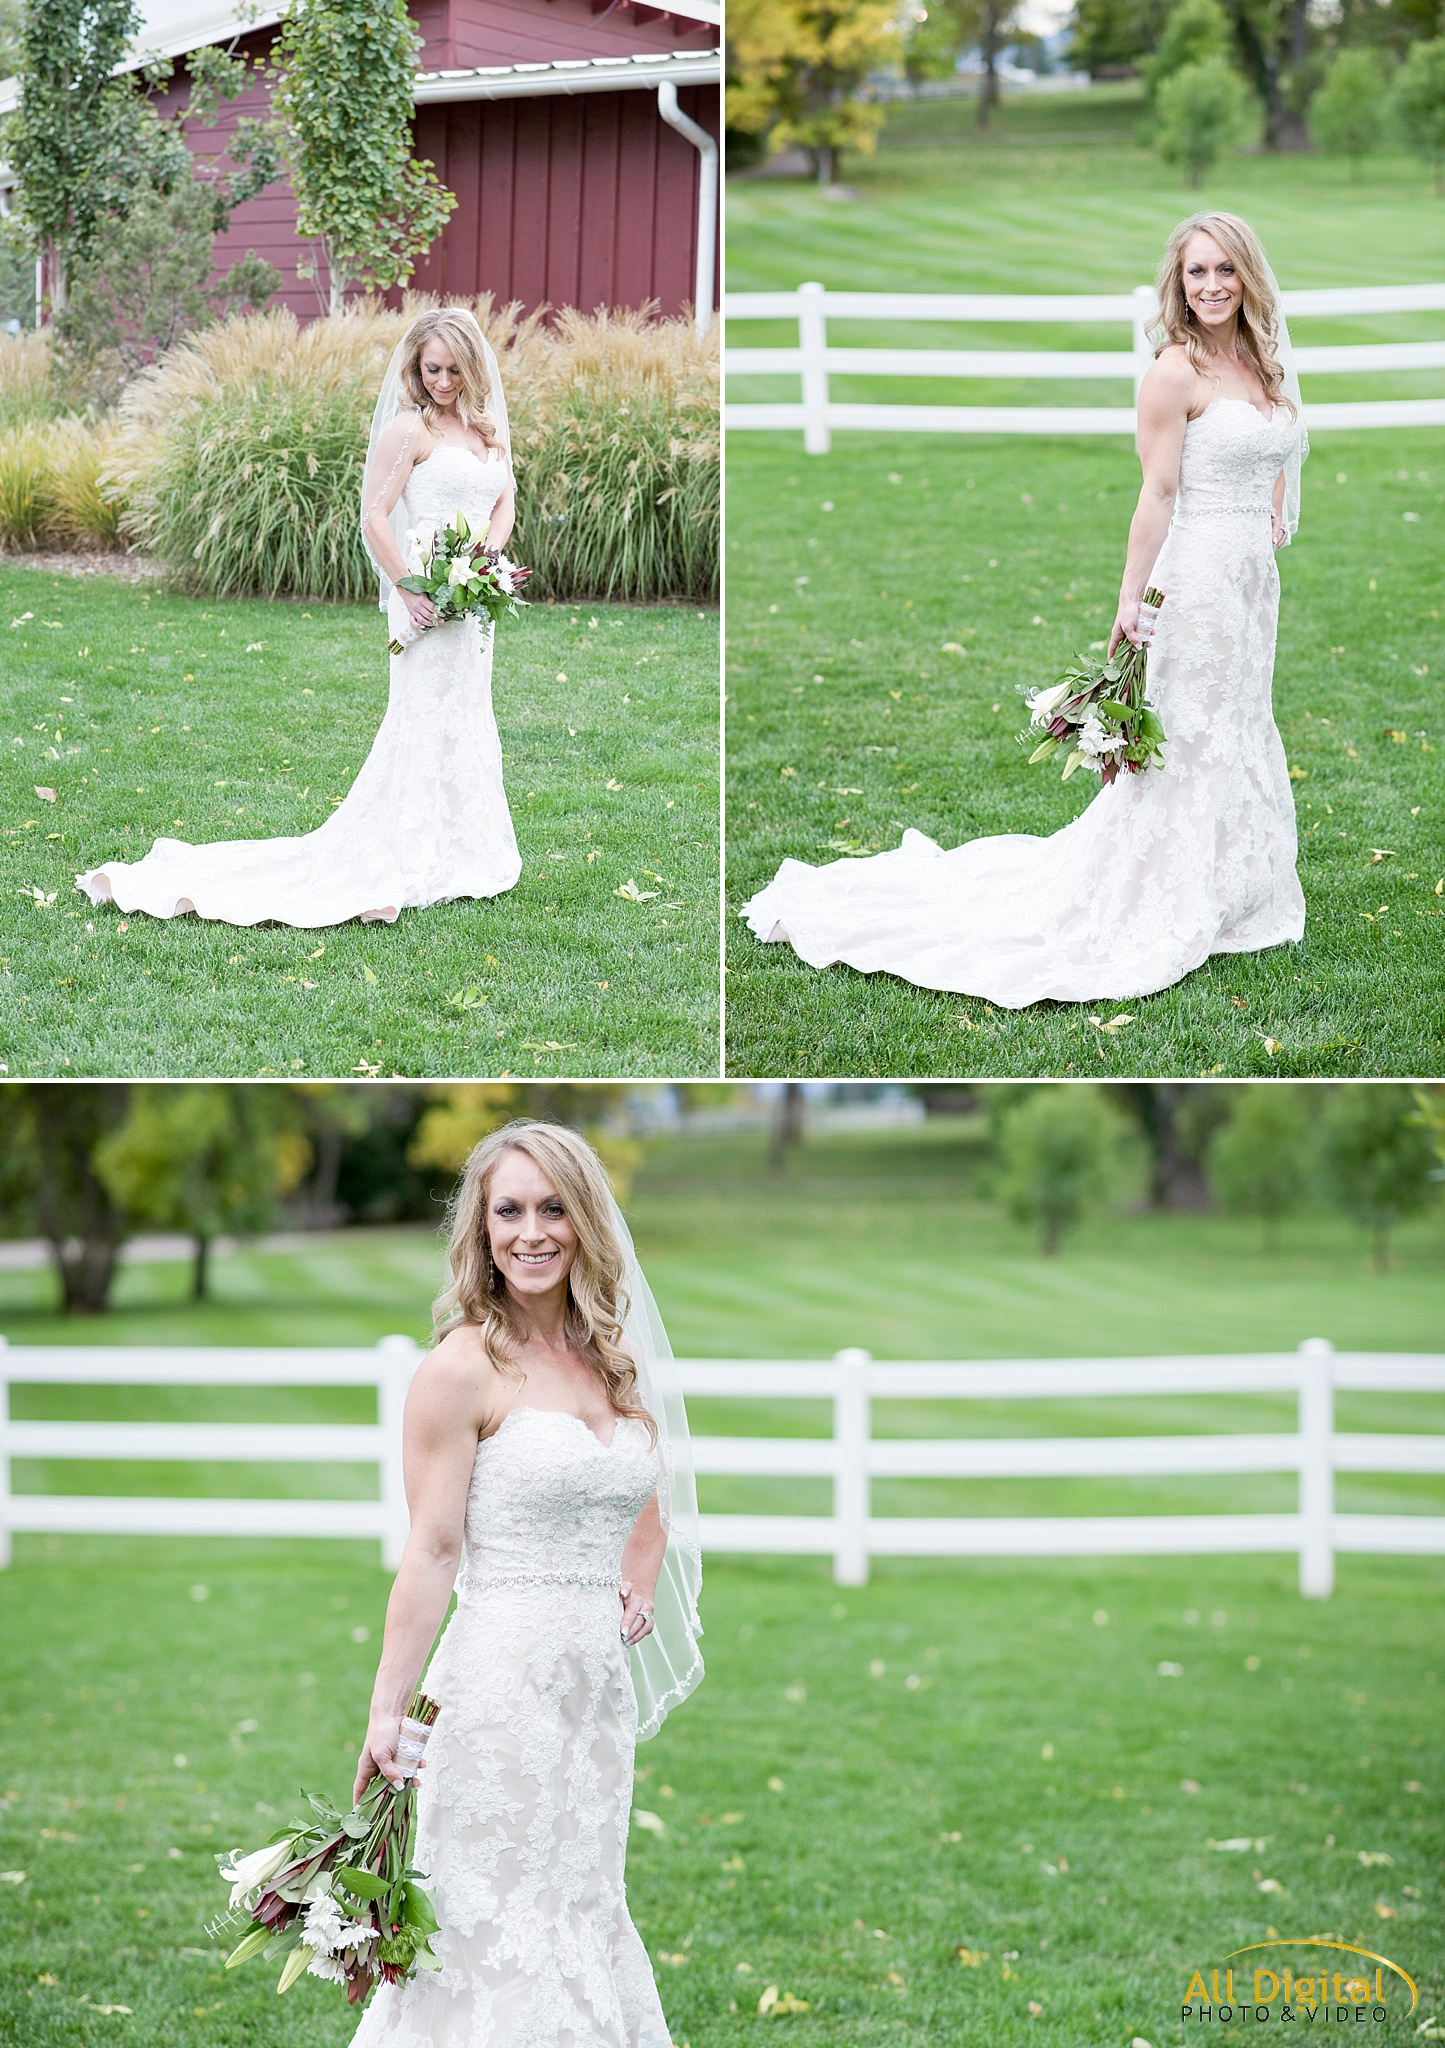 Tina's Bridal Portraits at Raccoon Creek